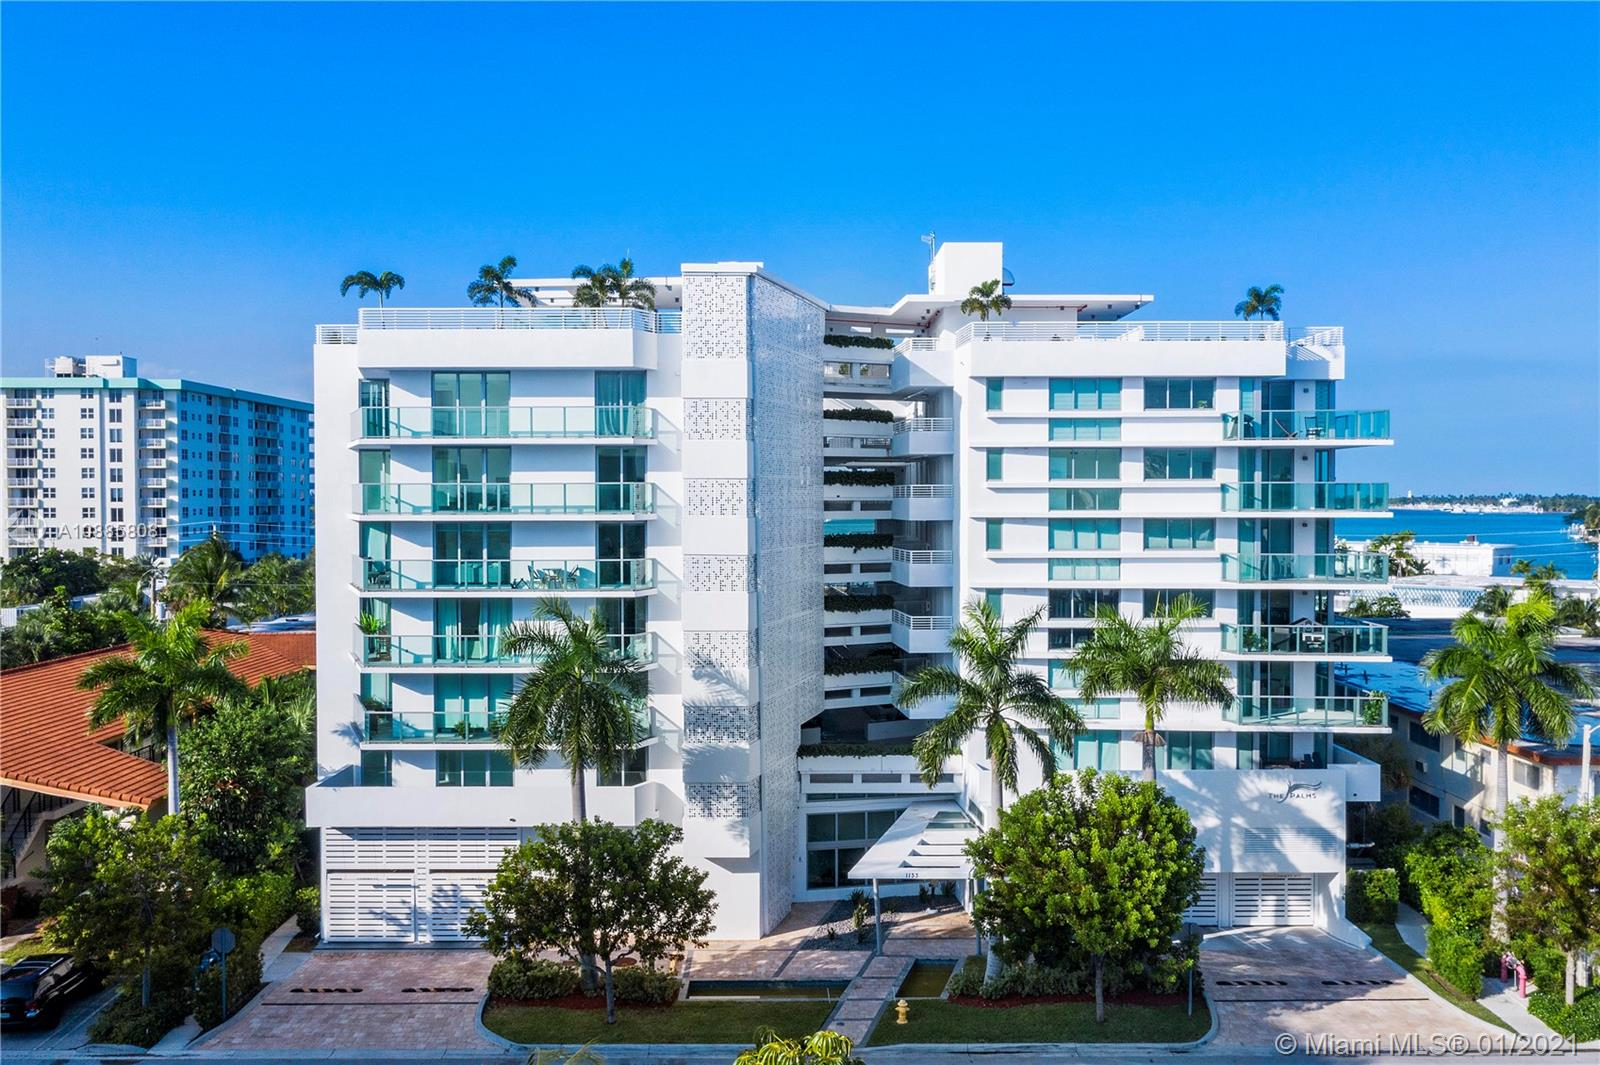 Built in 2018, this luxury boutique style building is located in the perfect location. This unit has 2 bedrooms and 2 bathrooms plus a den/third bedroom with custom glass sliding doors. Modern kitchen with European stainless steel appliances, floor to ceiling impact windows, tile throughout, washer and dryer inside, built in wine refrigerator. Gorgeous sunset views from the oversized 28 foot terrace and from the rooftop infinity pool and hot tub. Unit comes with 2 assigned parking spaces with a storage cage in the garage. Walking distance to shopping, places of worship, and A+ Bay Harbor K-8 Education Center. Great for investment opportunity. Unit is currently rented through November 2020 at $2,700 per Month. 24 hour notice needed for showing.